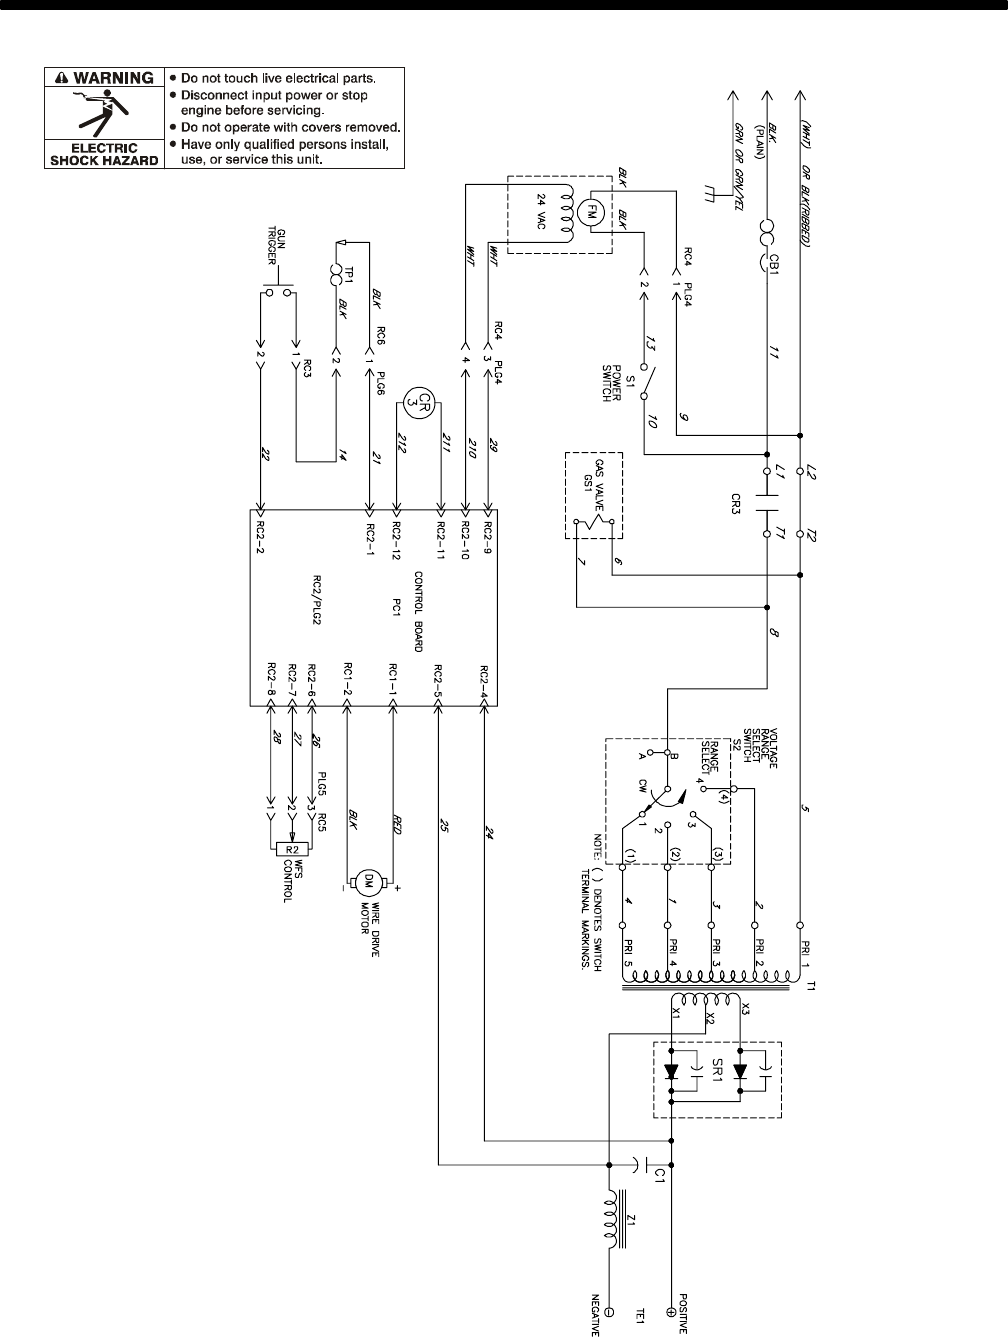 Page 33 of Hobart Welding Products Welder 140 User Guide